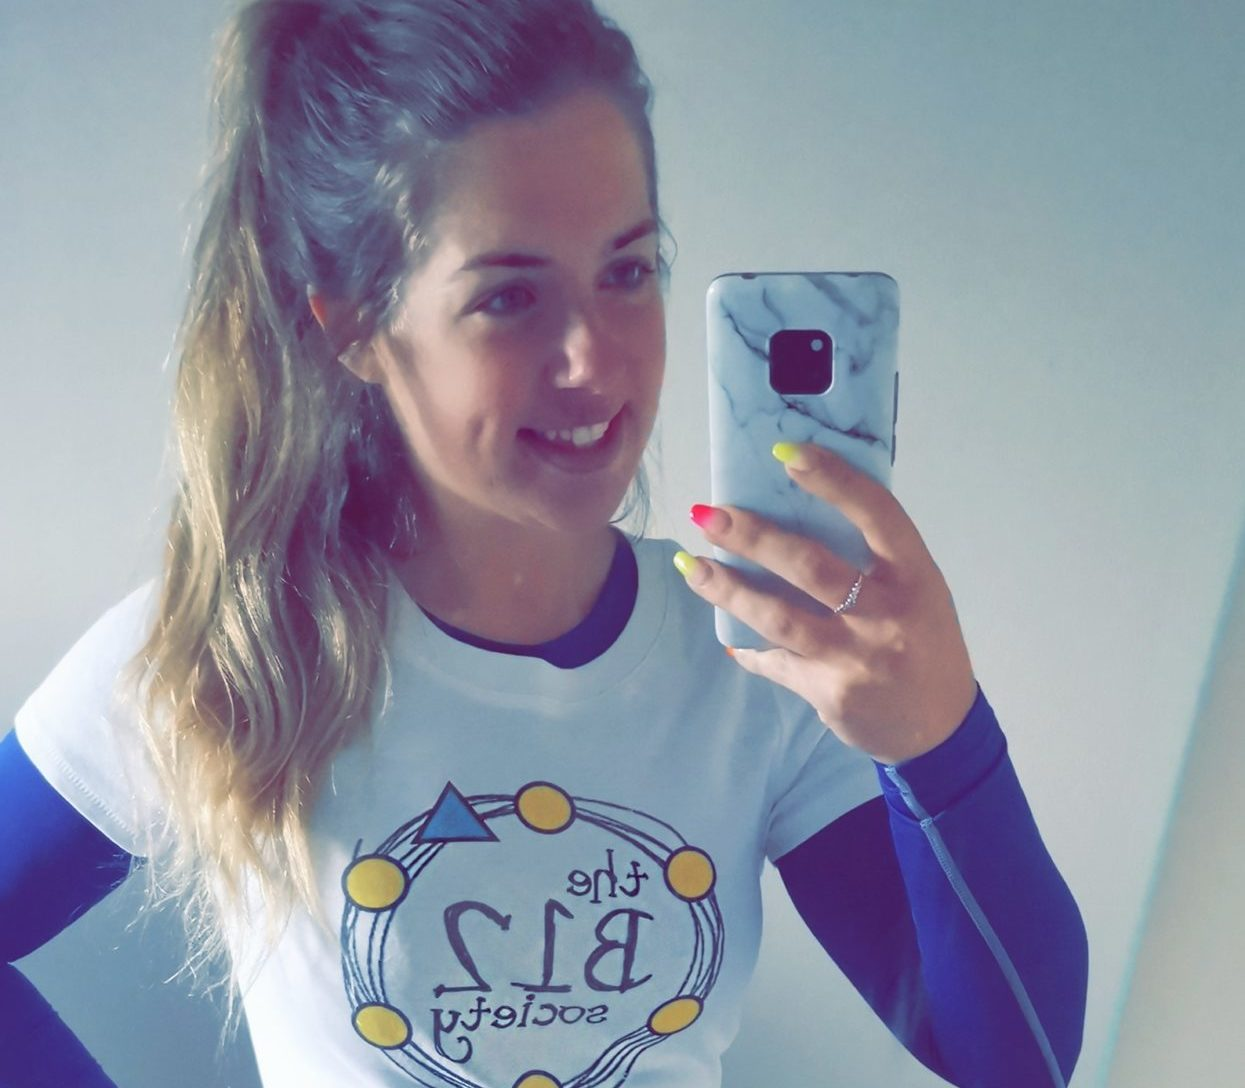 Vikki McIntee carried out a 100 mile running challenge